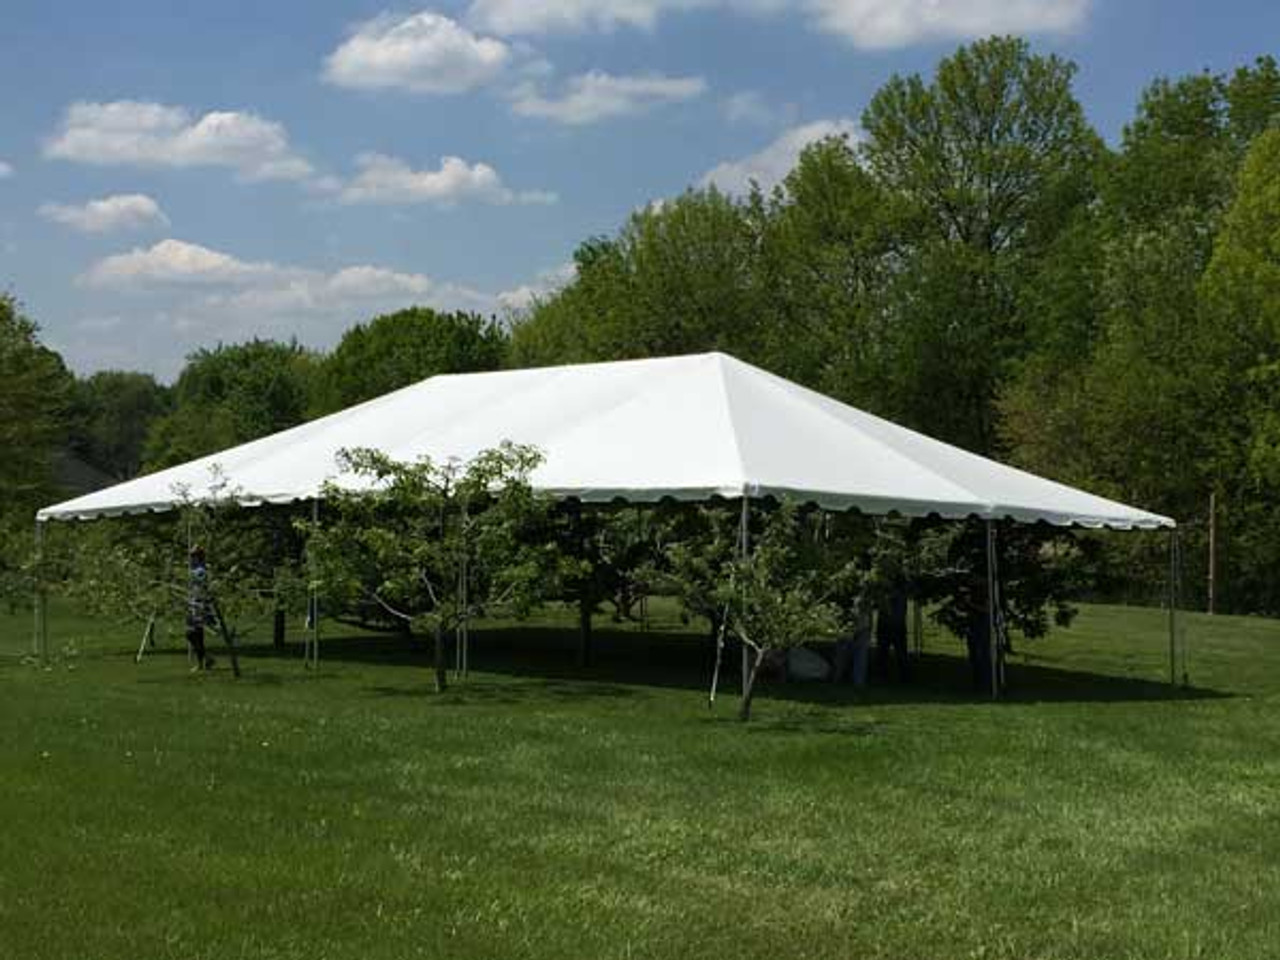 Sectional Frame Tent - Arise Tents & Events